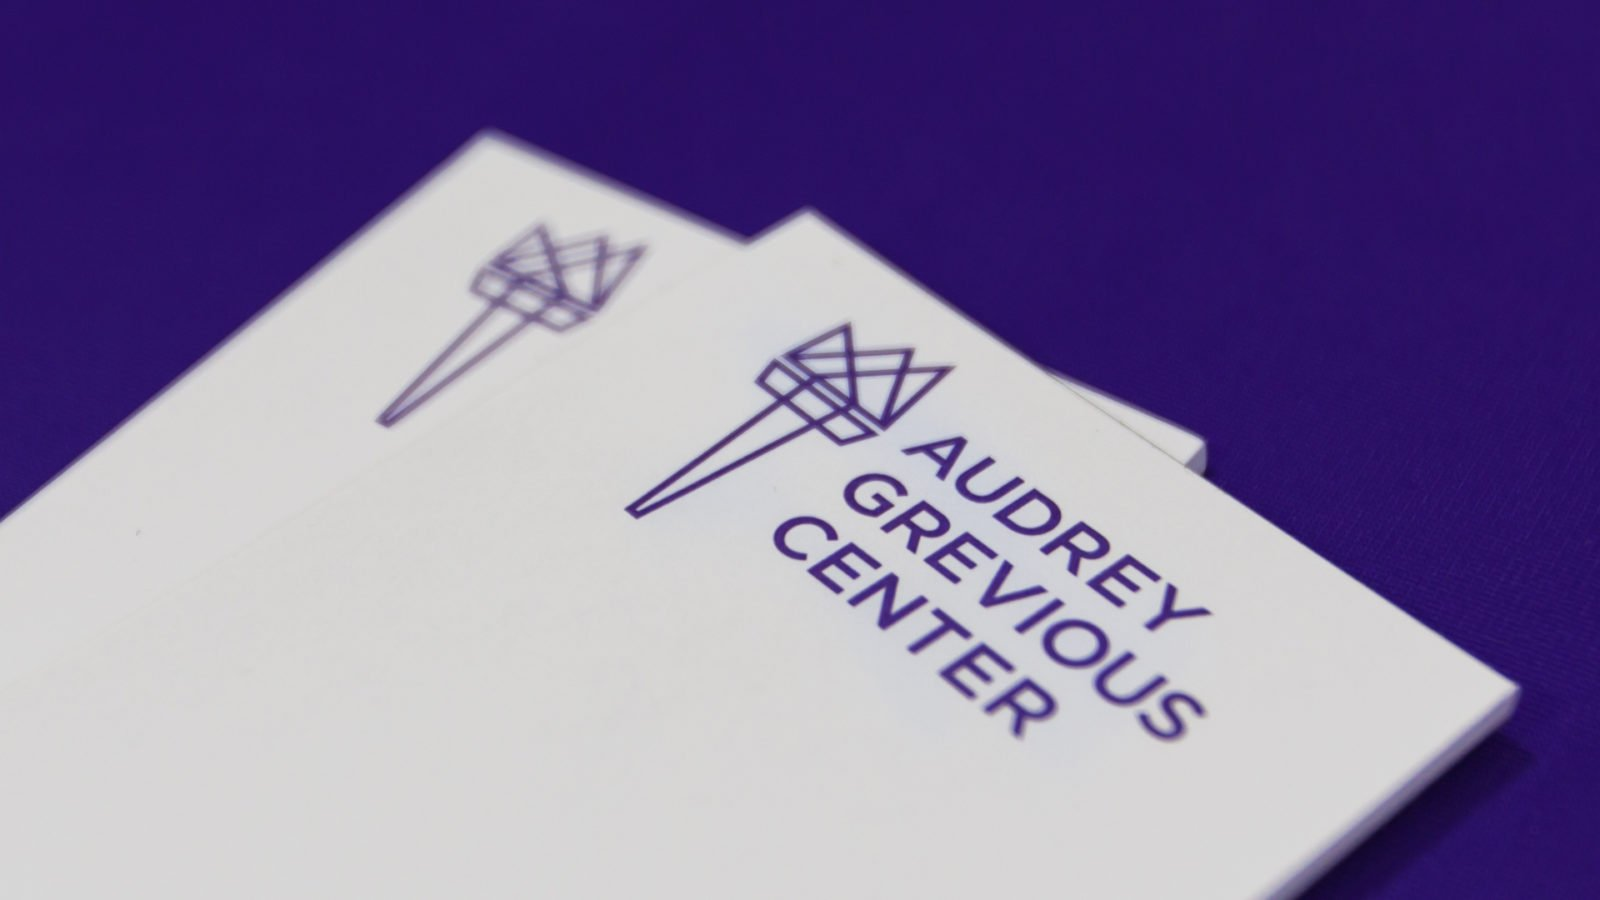 Stationery for the Audrey Grevious Center School